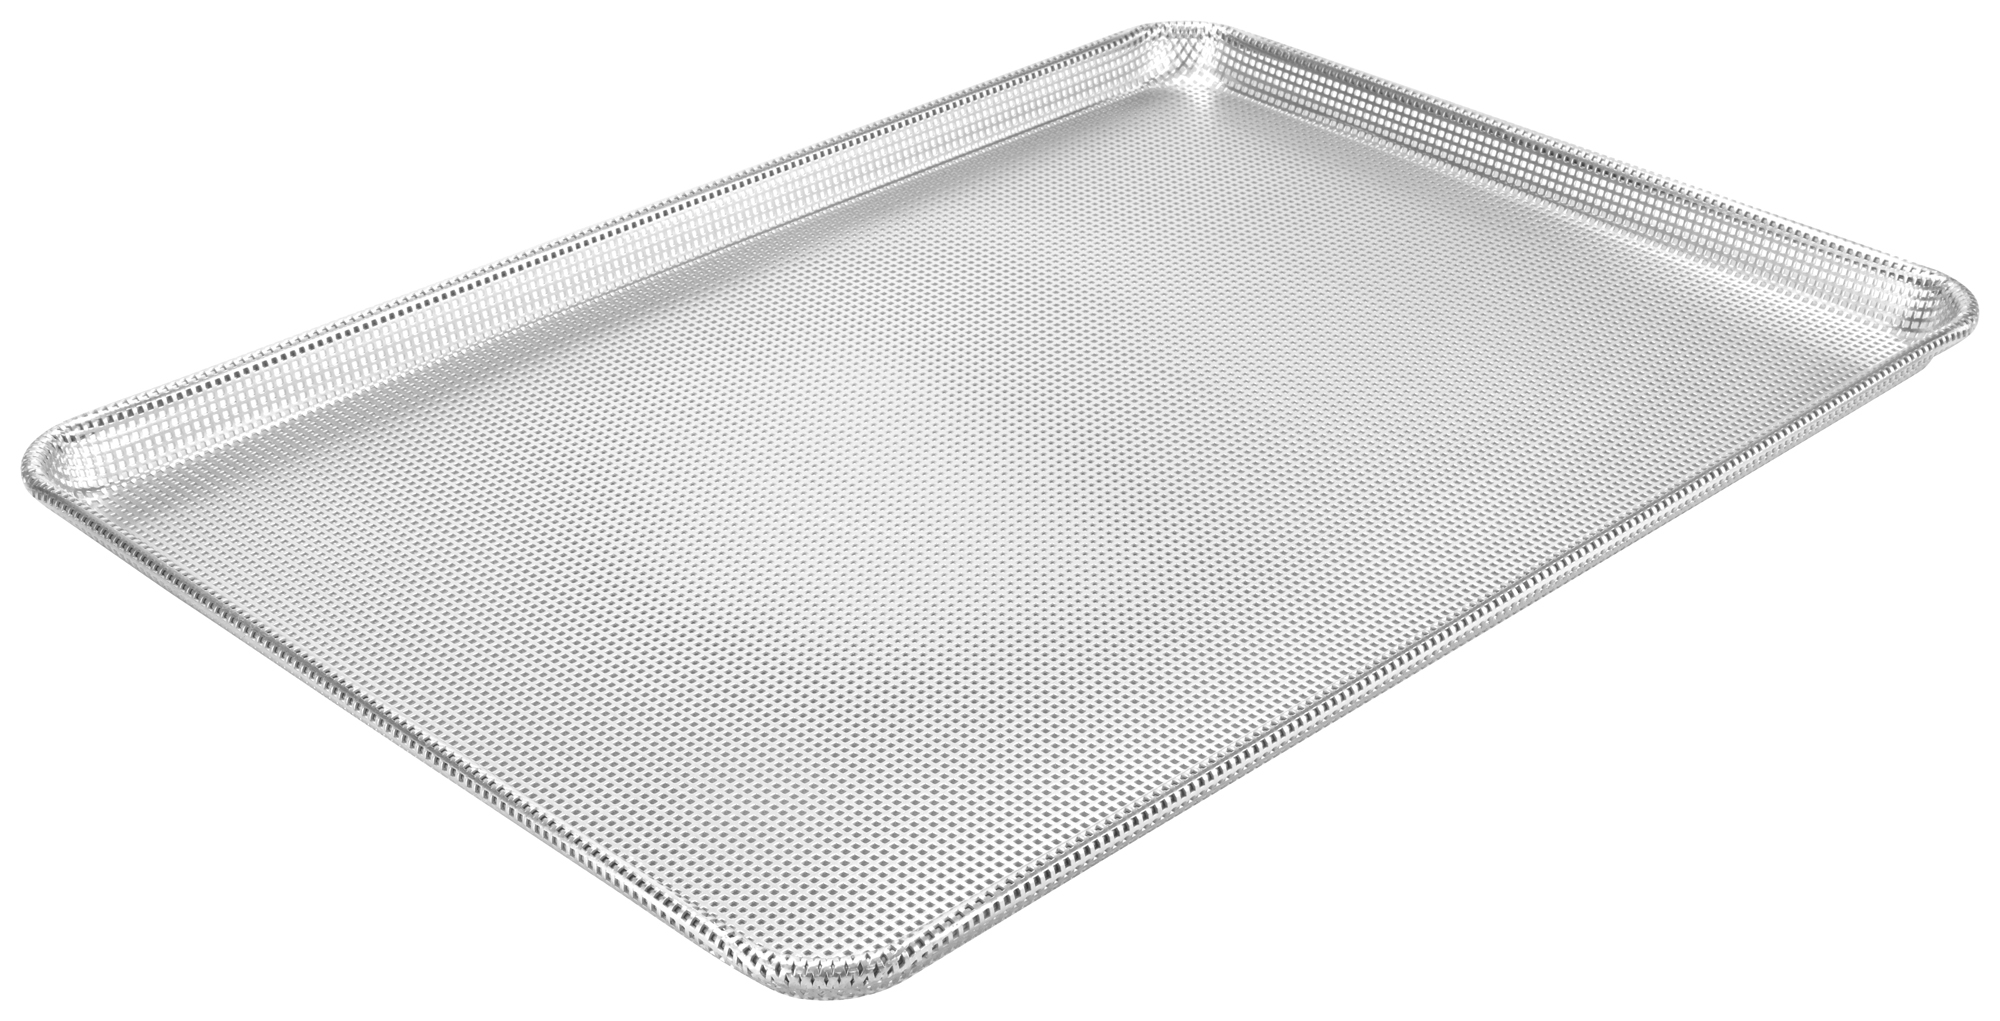 Winco ALXN-1826P sheet pan